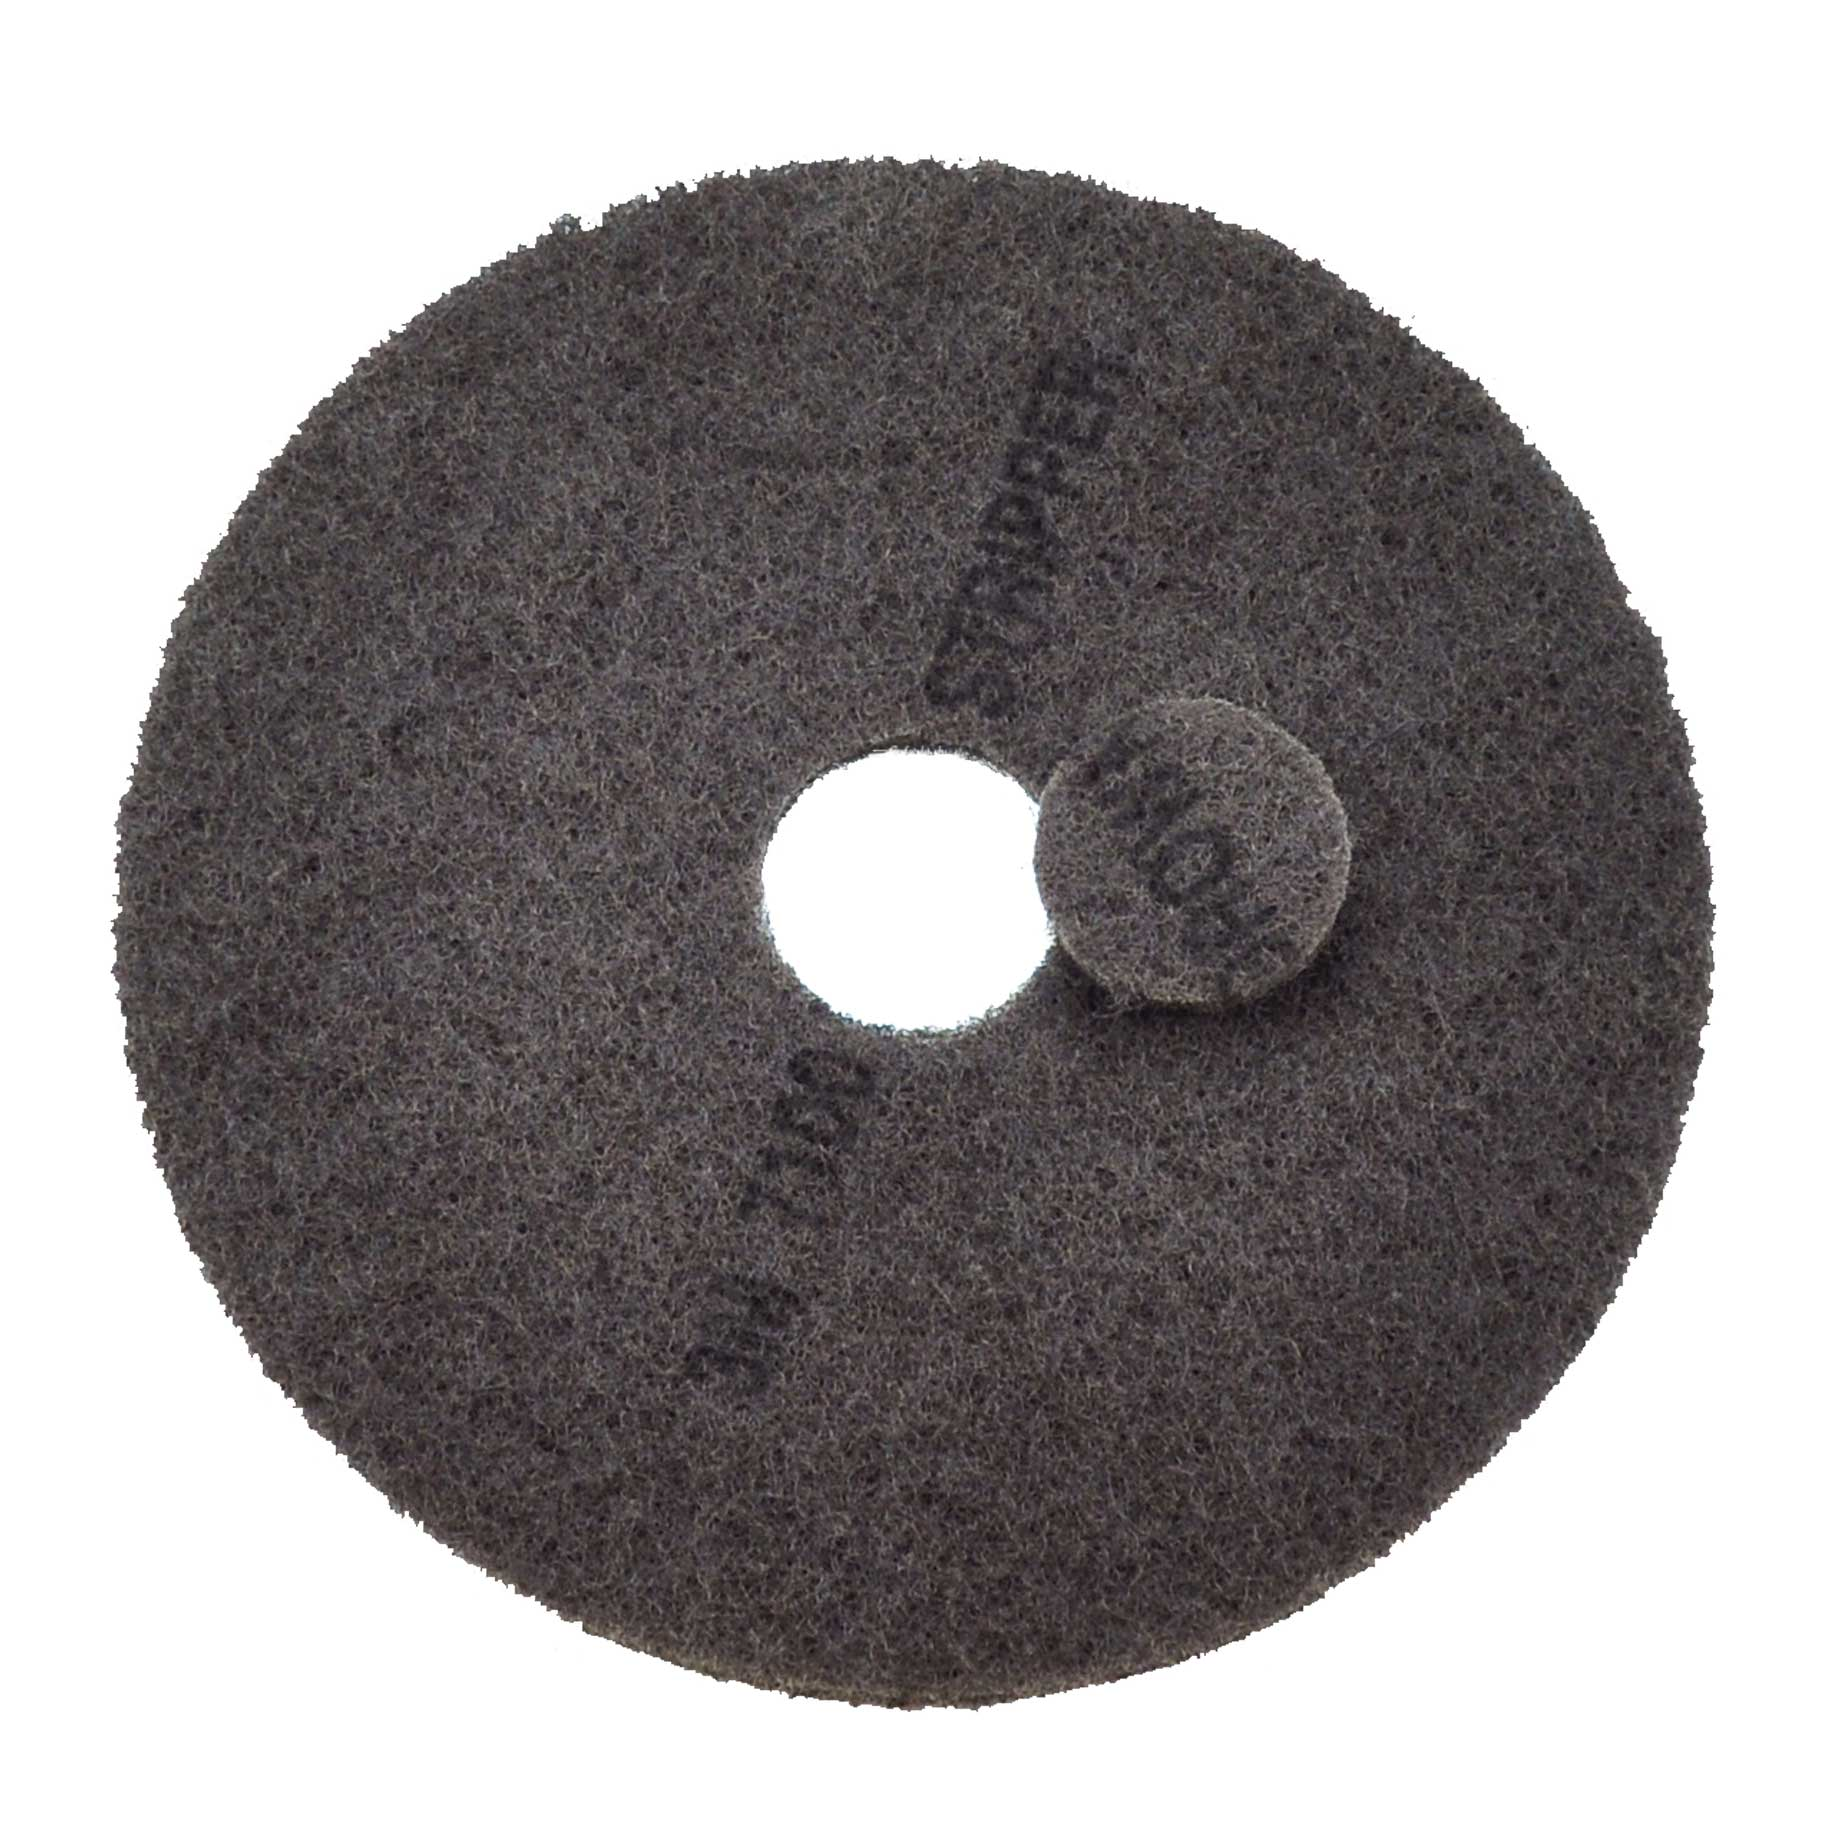 3M7100 marks in addition to brushing scouring pad polishing pad cleaning pad pad dry/wet wax pad 20 inch brown